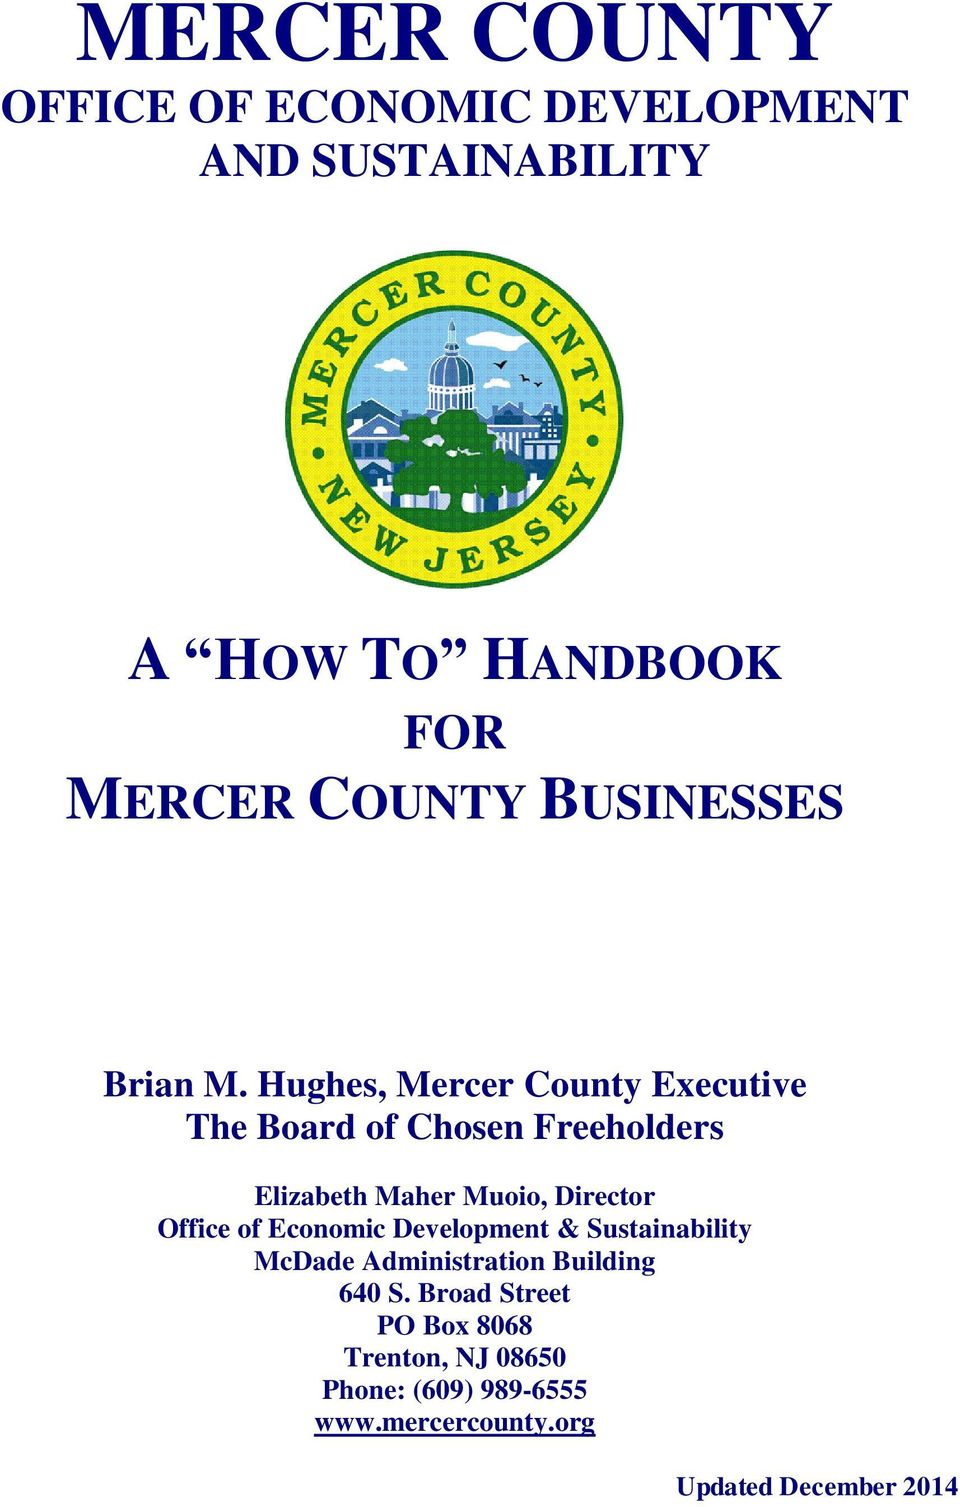 Hughes, Mercer County Executive The Board of Chosen Freeholders Elizabeth Maher Muoio, Director Office